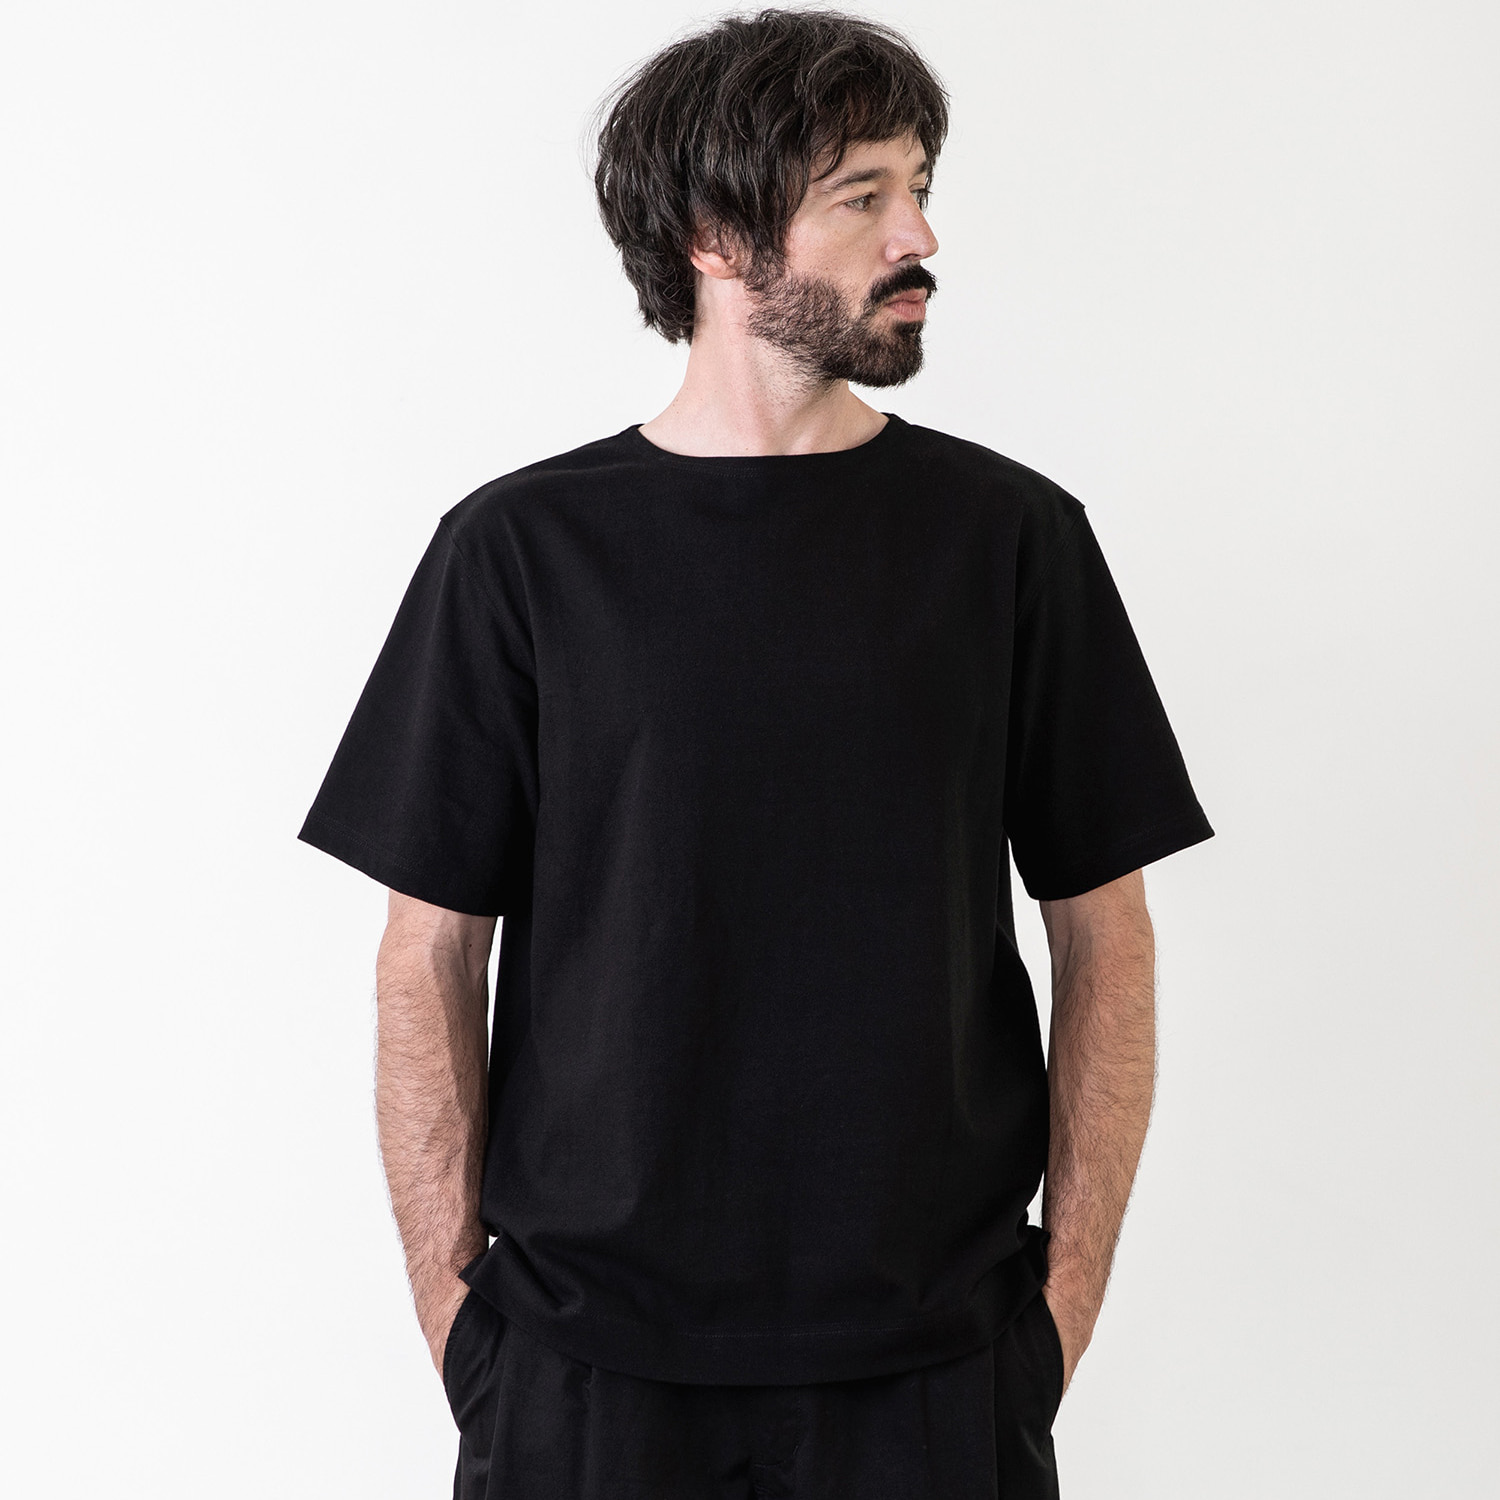 25% OFF_LIBRE PLAIN BASQUESHIRT (Black)